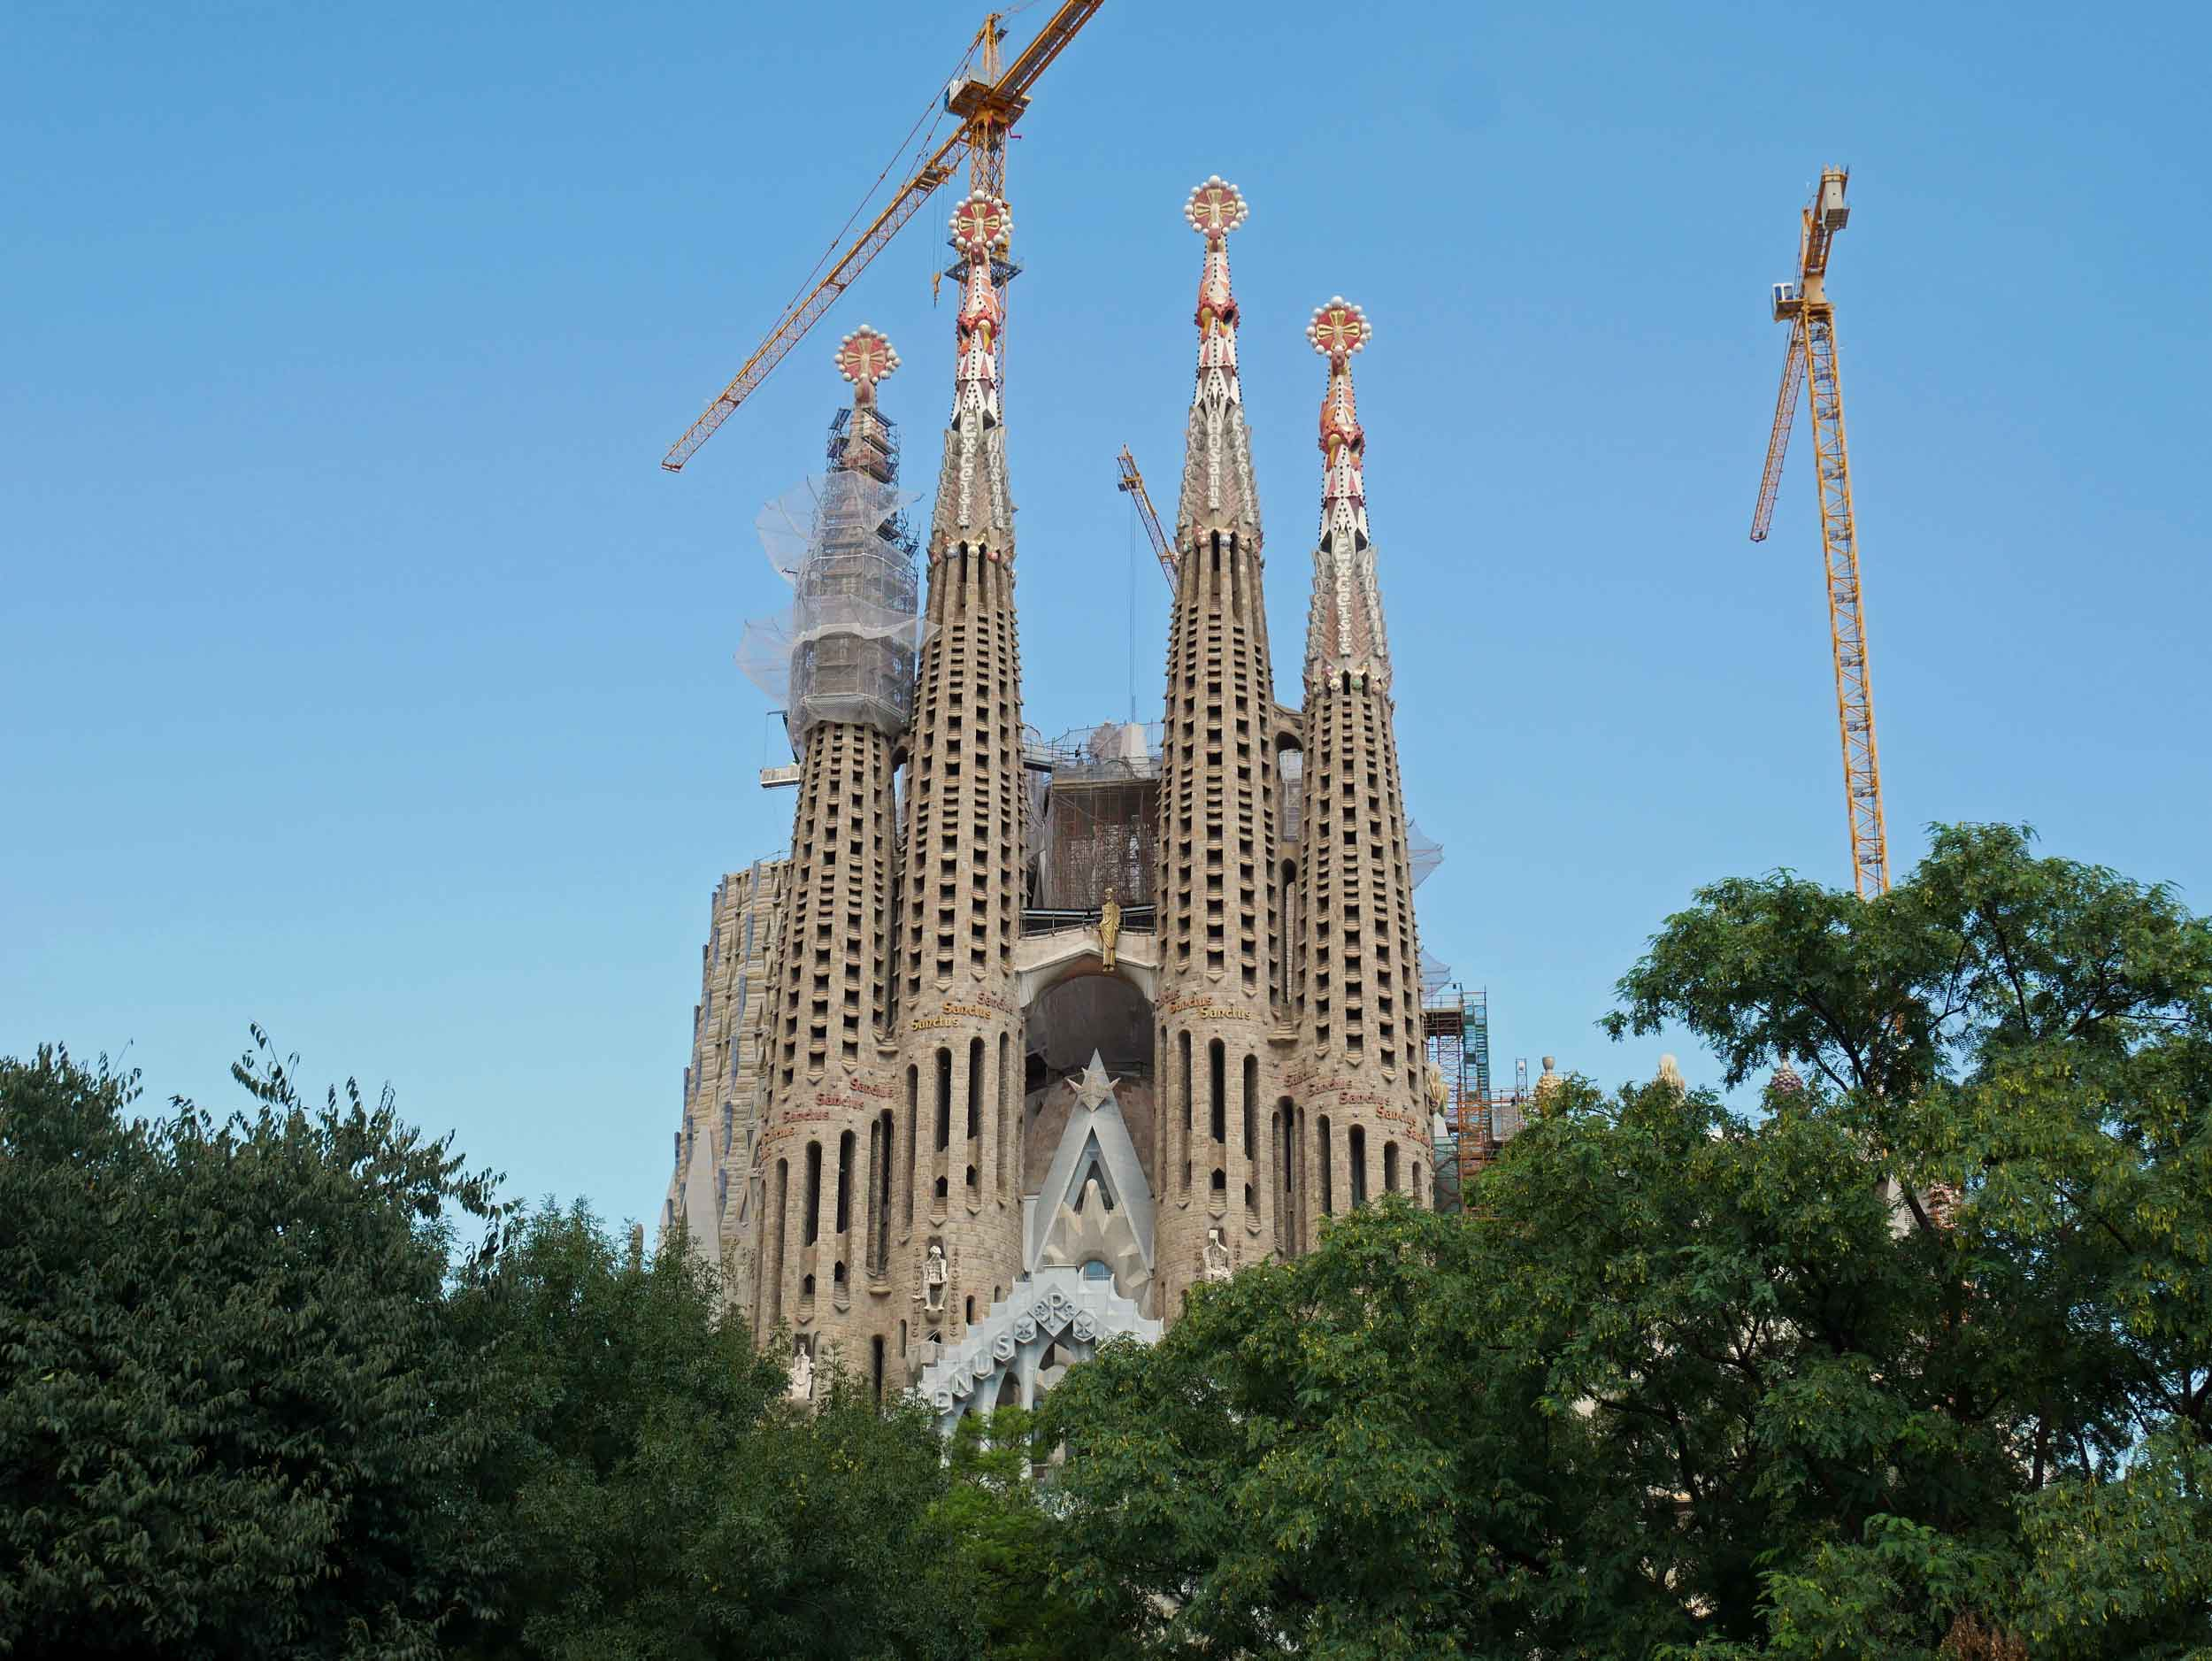 Spires of the awe-inspiring Sagrada Família, imagined by Antoni Gaudíback in 1882 with construction that continues even to this day.